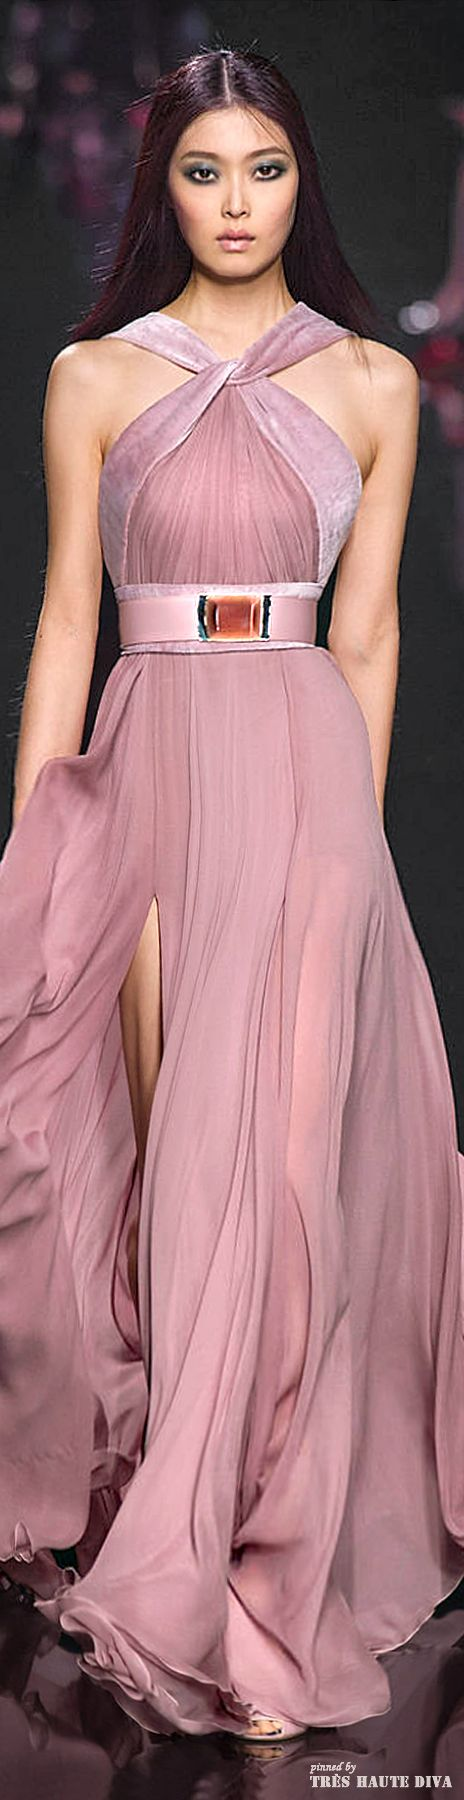 102 best images about Vestidos en Rosa on Pinterest